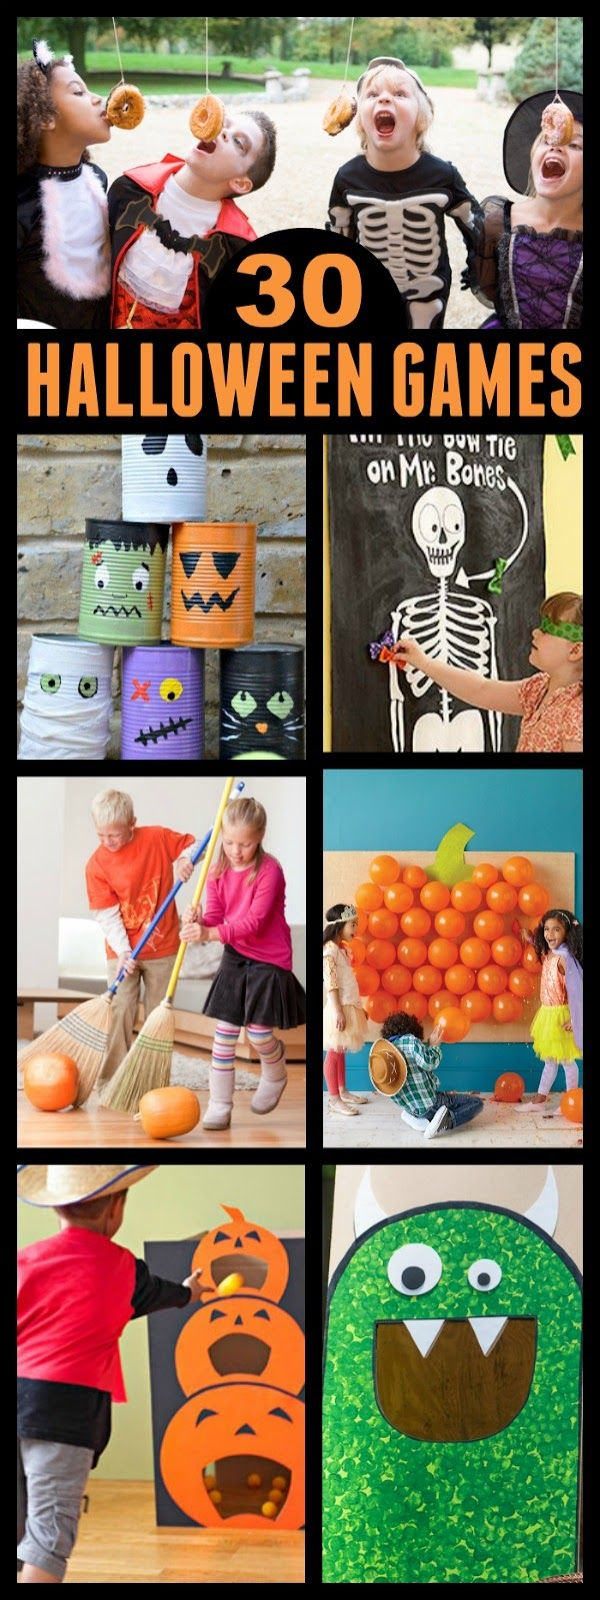 hier findet ihr 30 coole spiele f r die kinder halloween party halloween pinterest. Black Bedroom Furniture Sets. Home Design Ideas